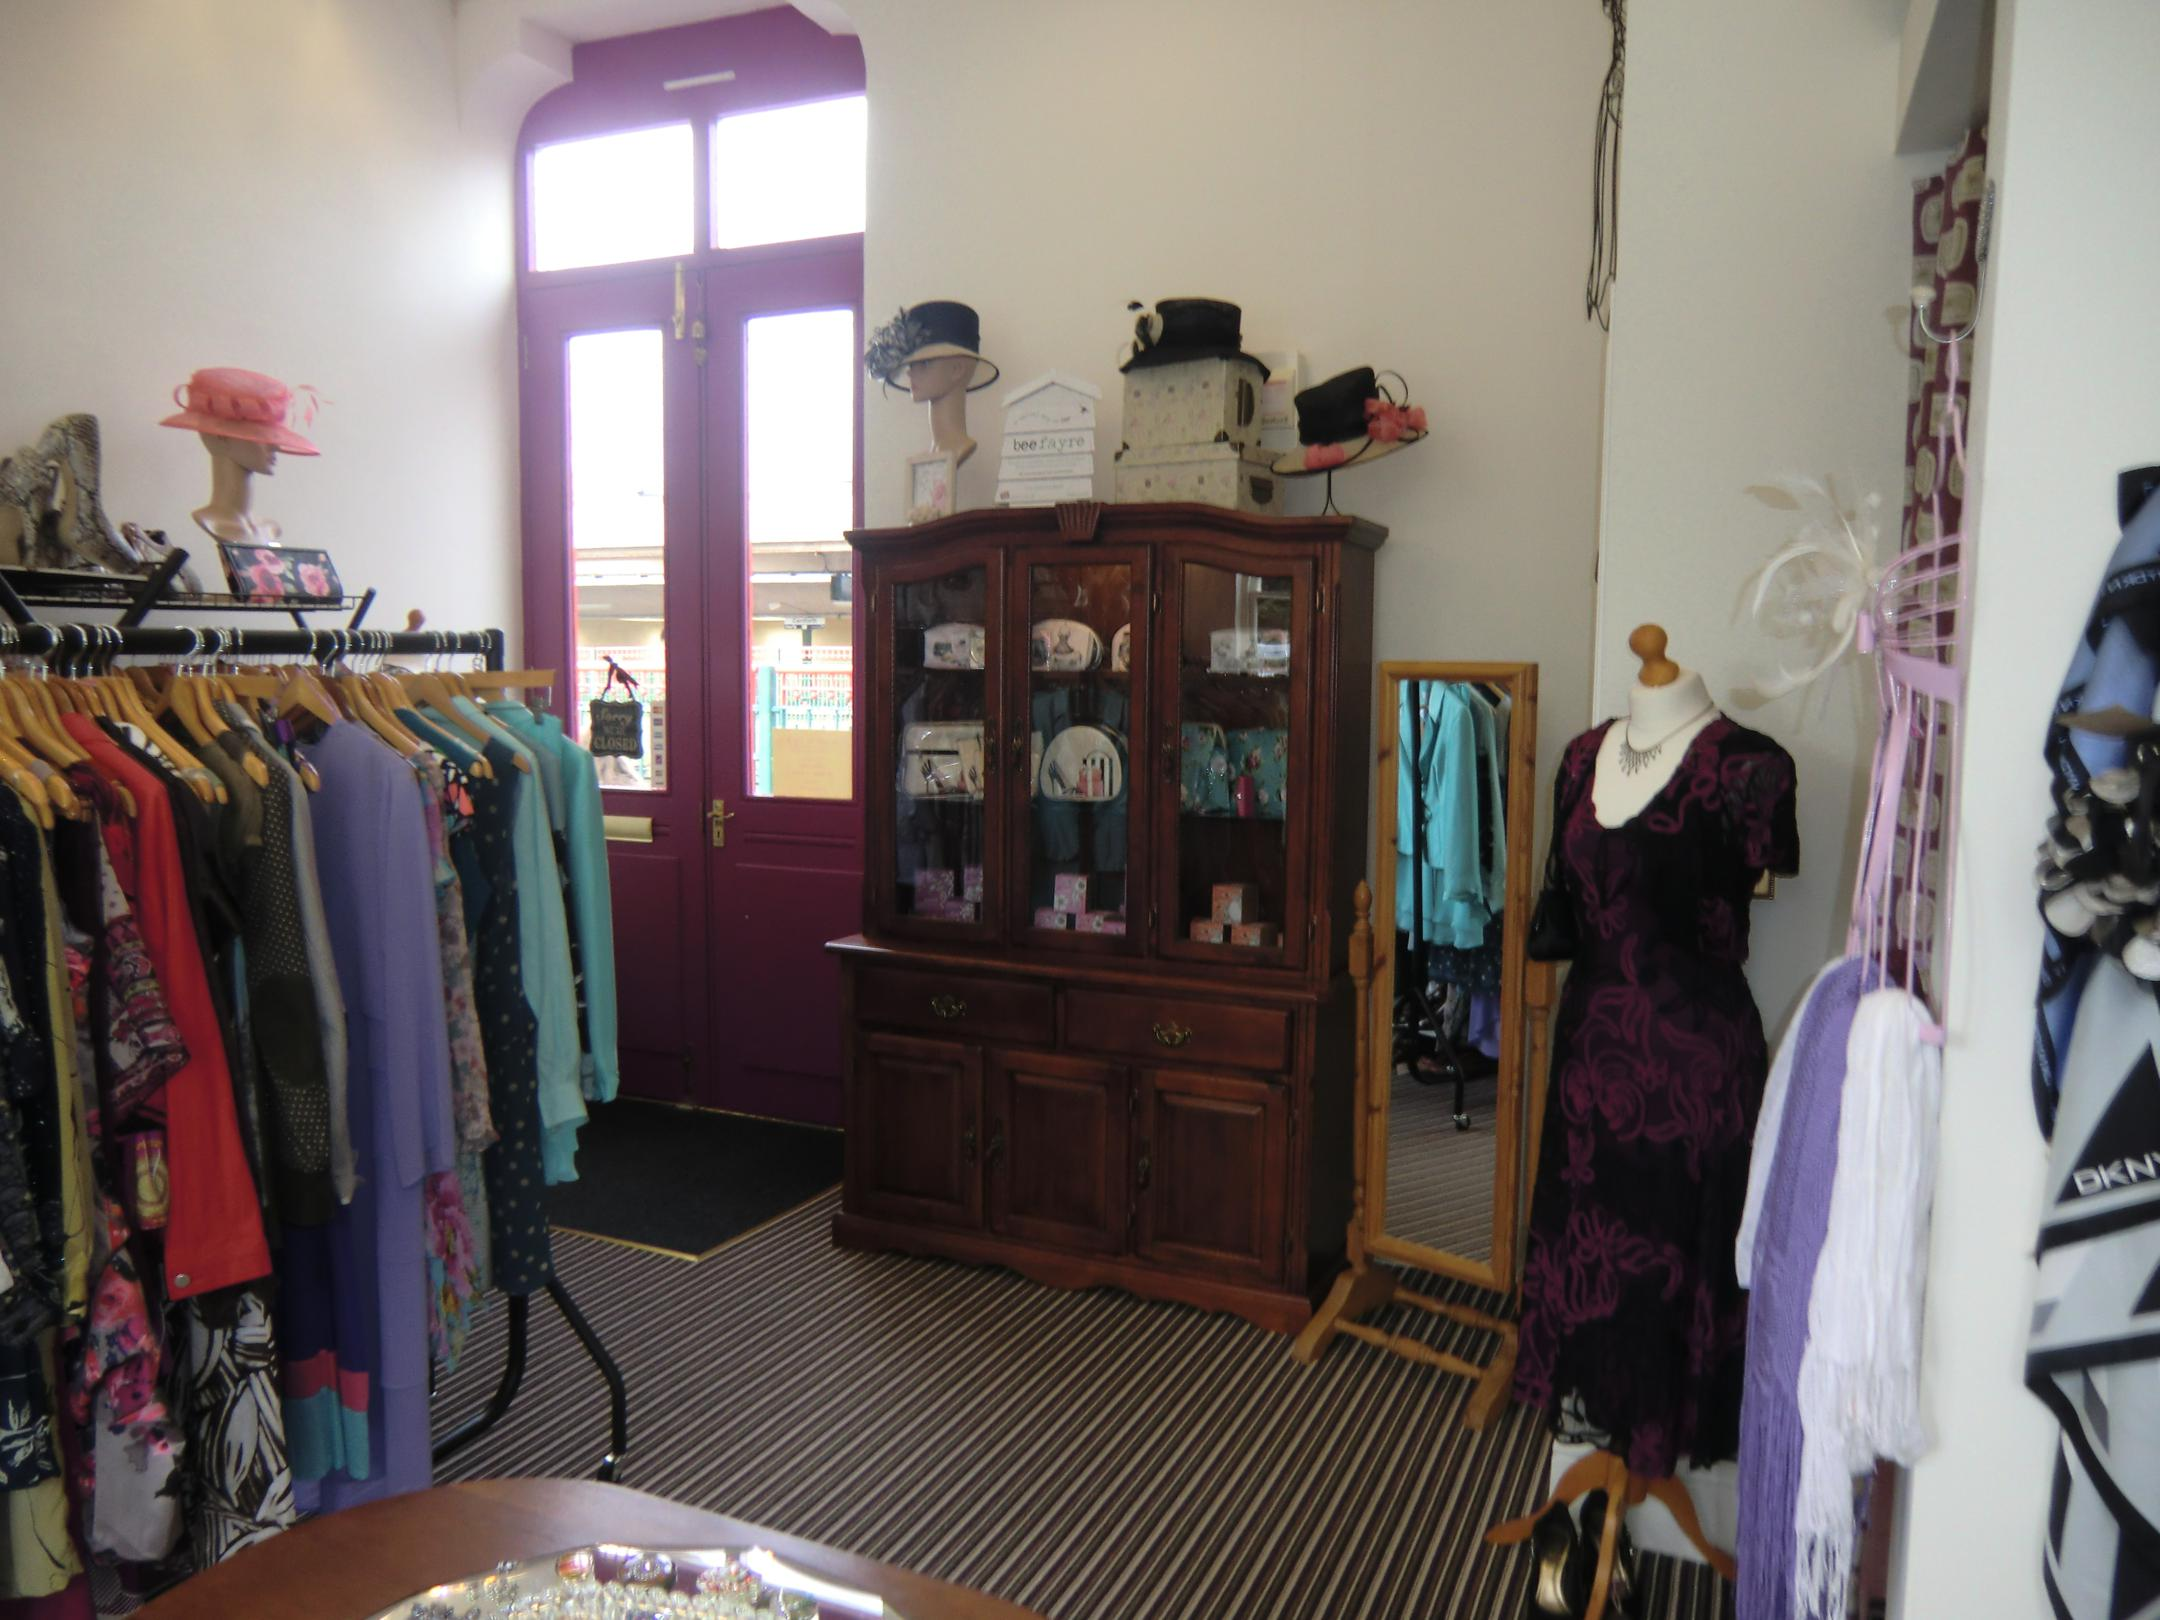 The dress agency - Based Within The Historic Station Building At Carnforth Railway Station We Carry A Wide Selection Of Wonderful Designer Garments To Suit All Tastes And All